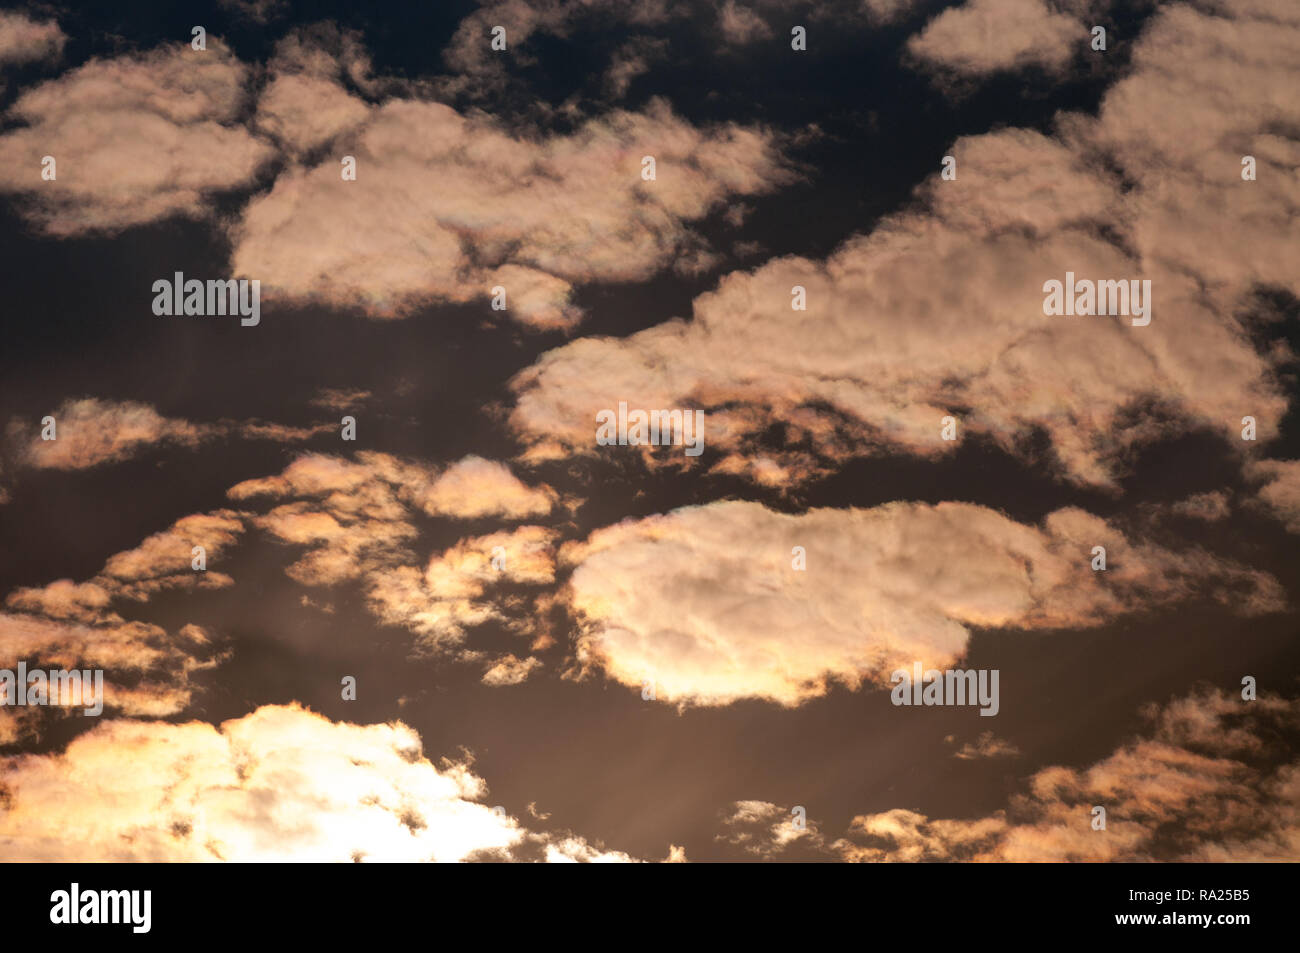 Fluffy clouds in the sky after sunset - Stock Image